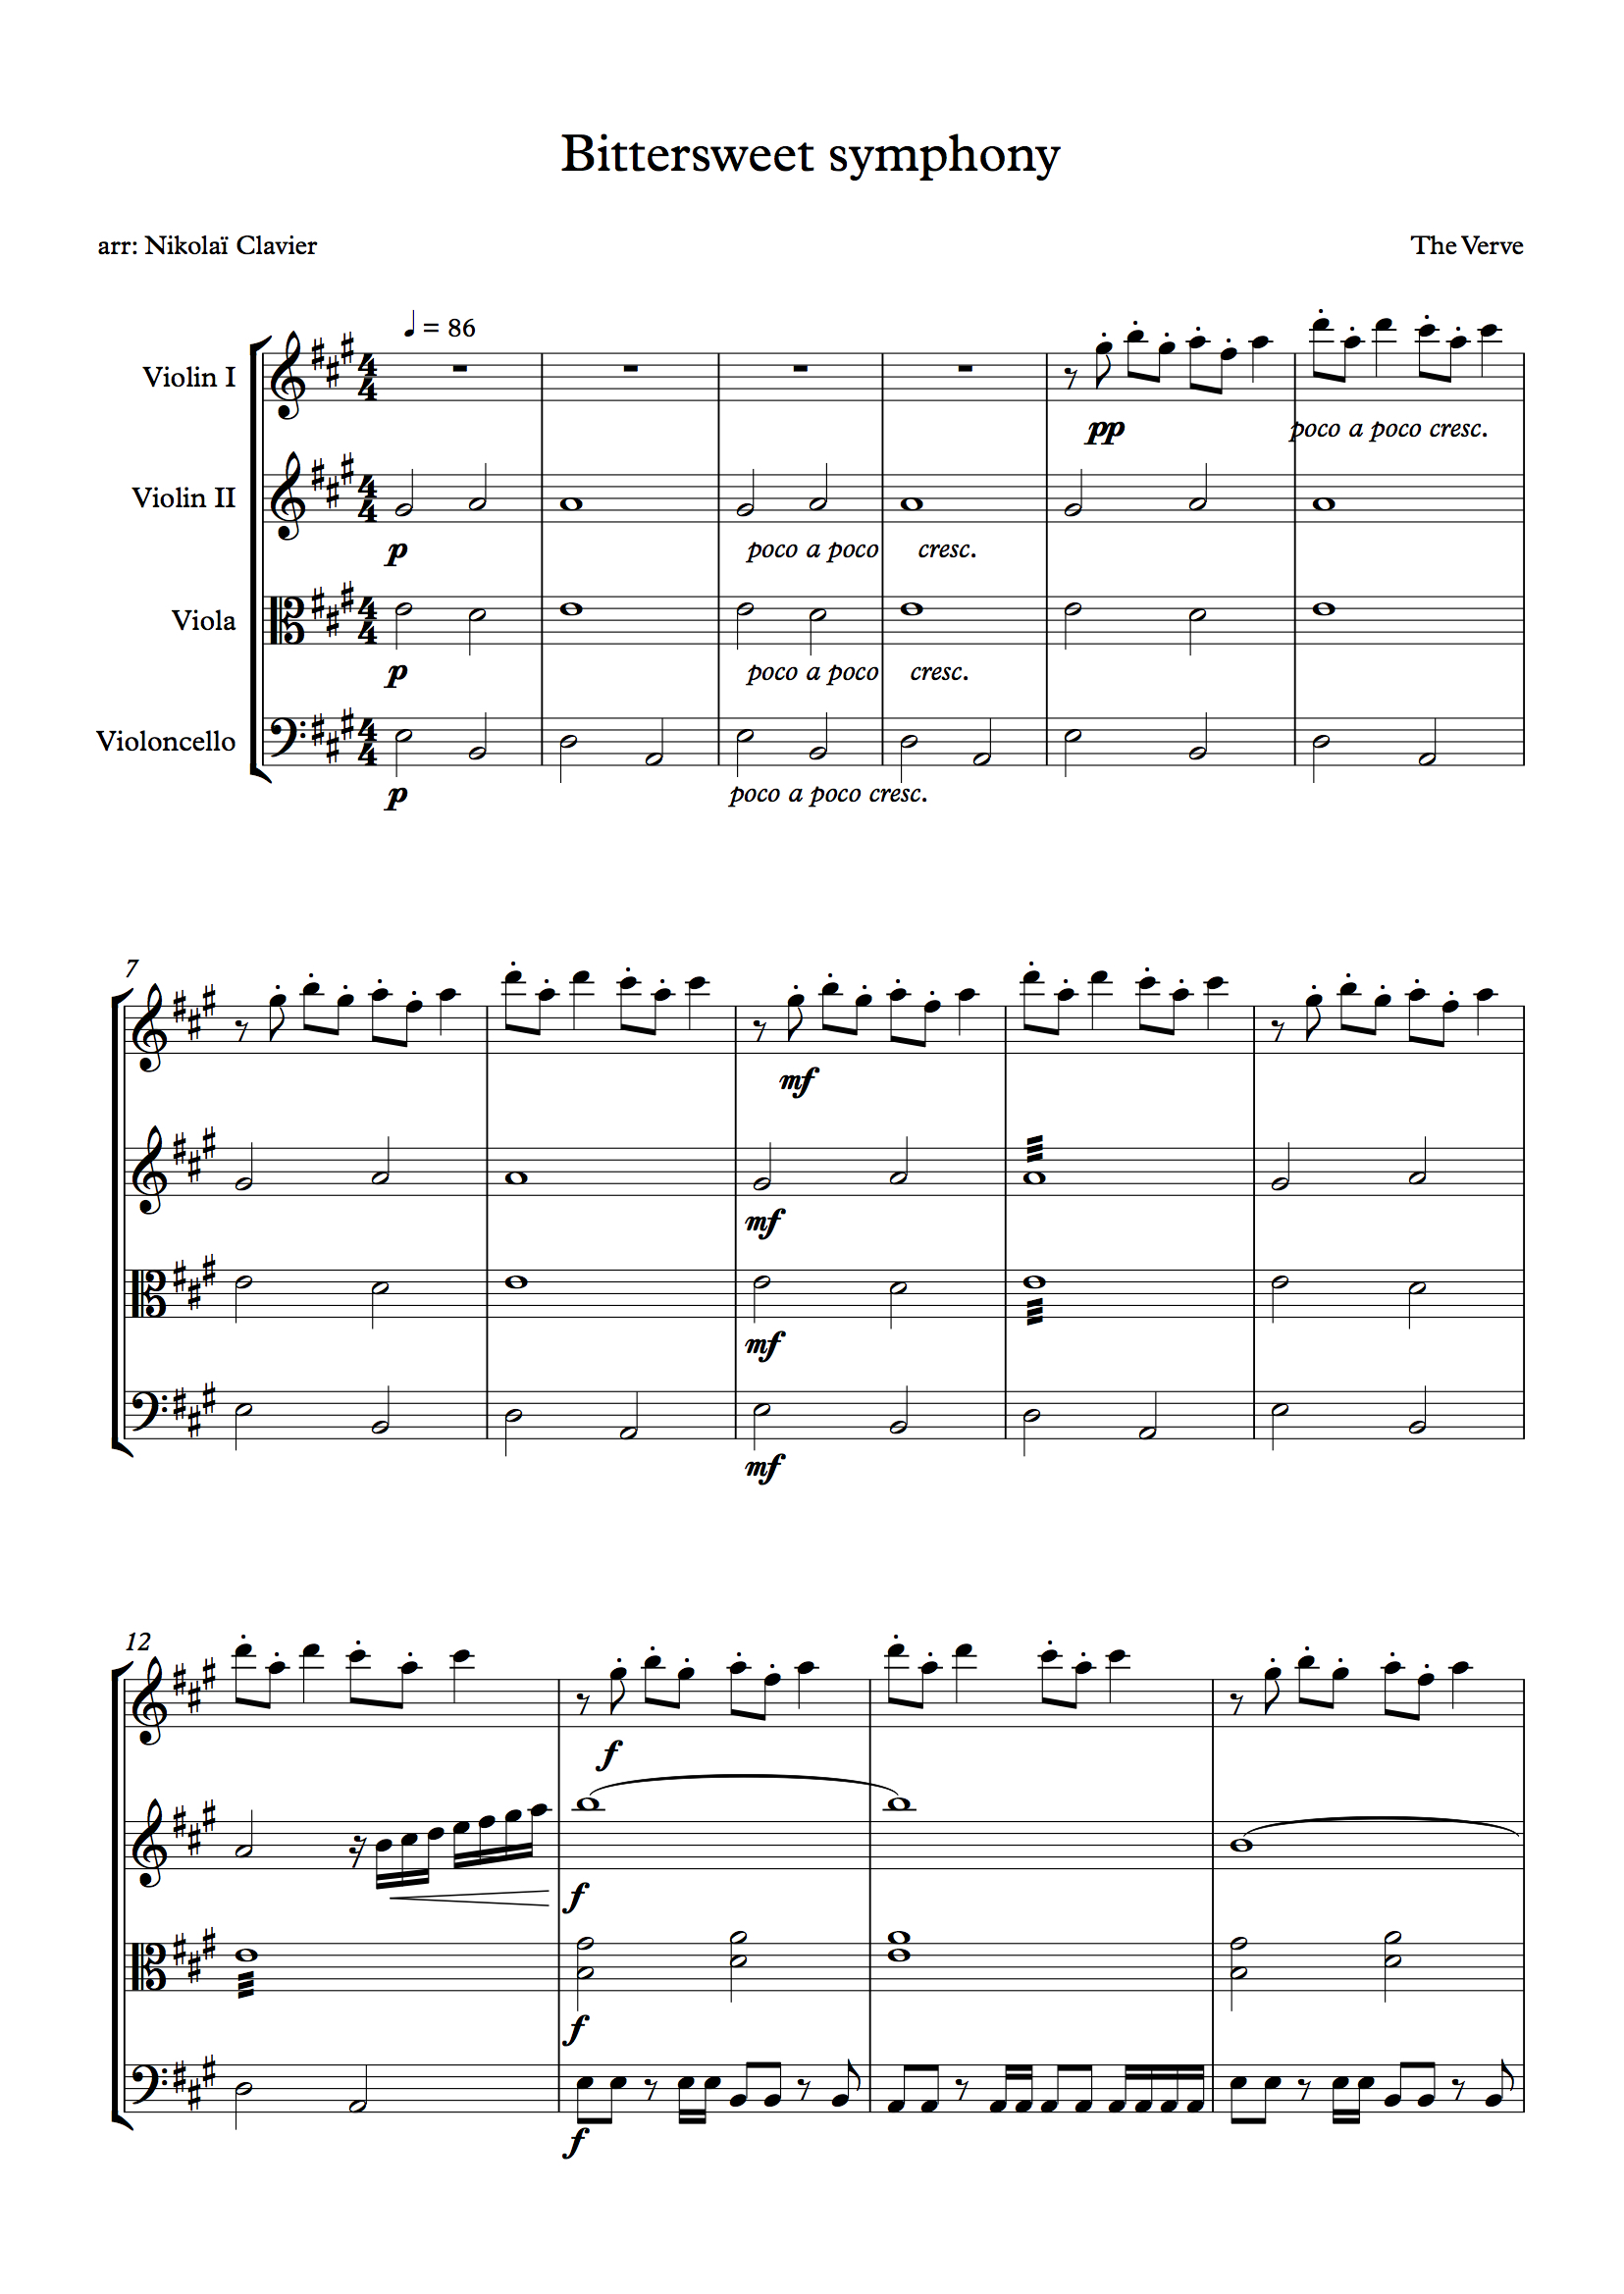 bittersweet-symphony-string-quartet-score (dragged)